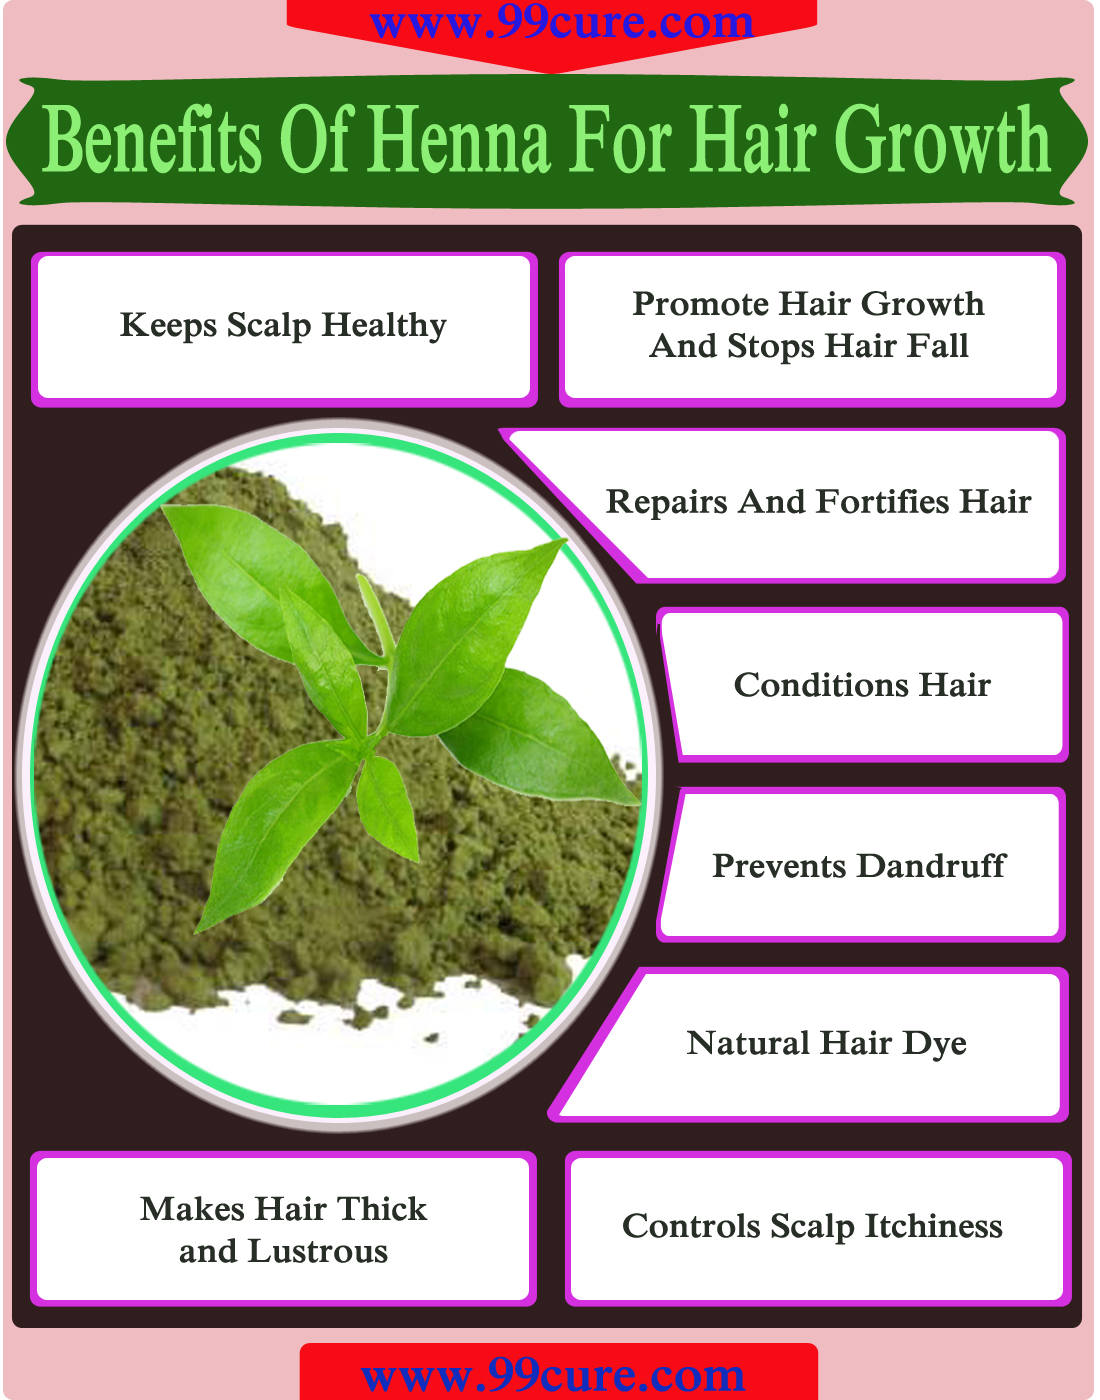 Benefits Of Henna For Hair Growth